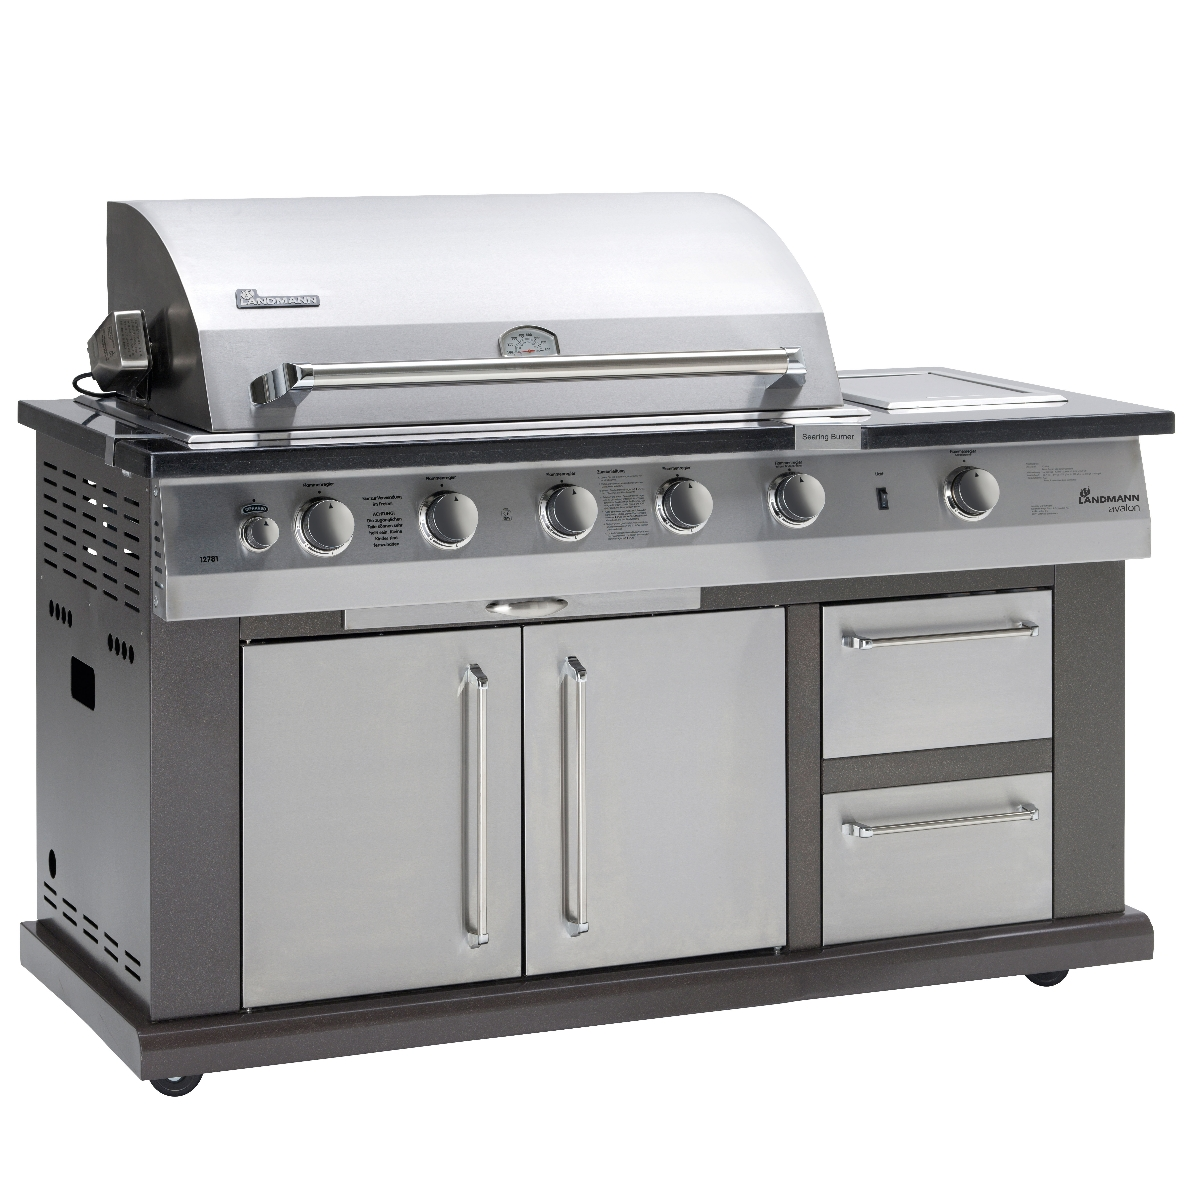 Landmann 12781 avalon gas barbecue 5 burner deluxe kitchen for Modern barbecue grill